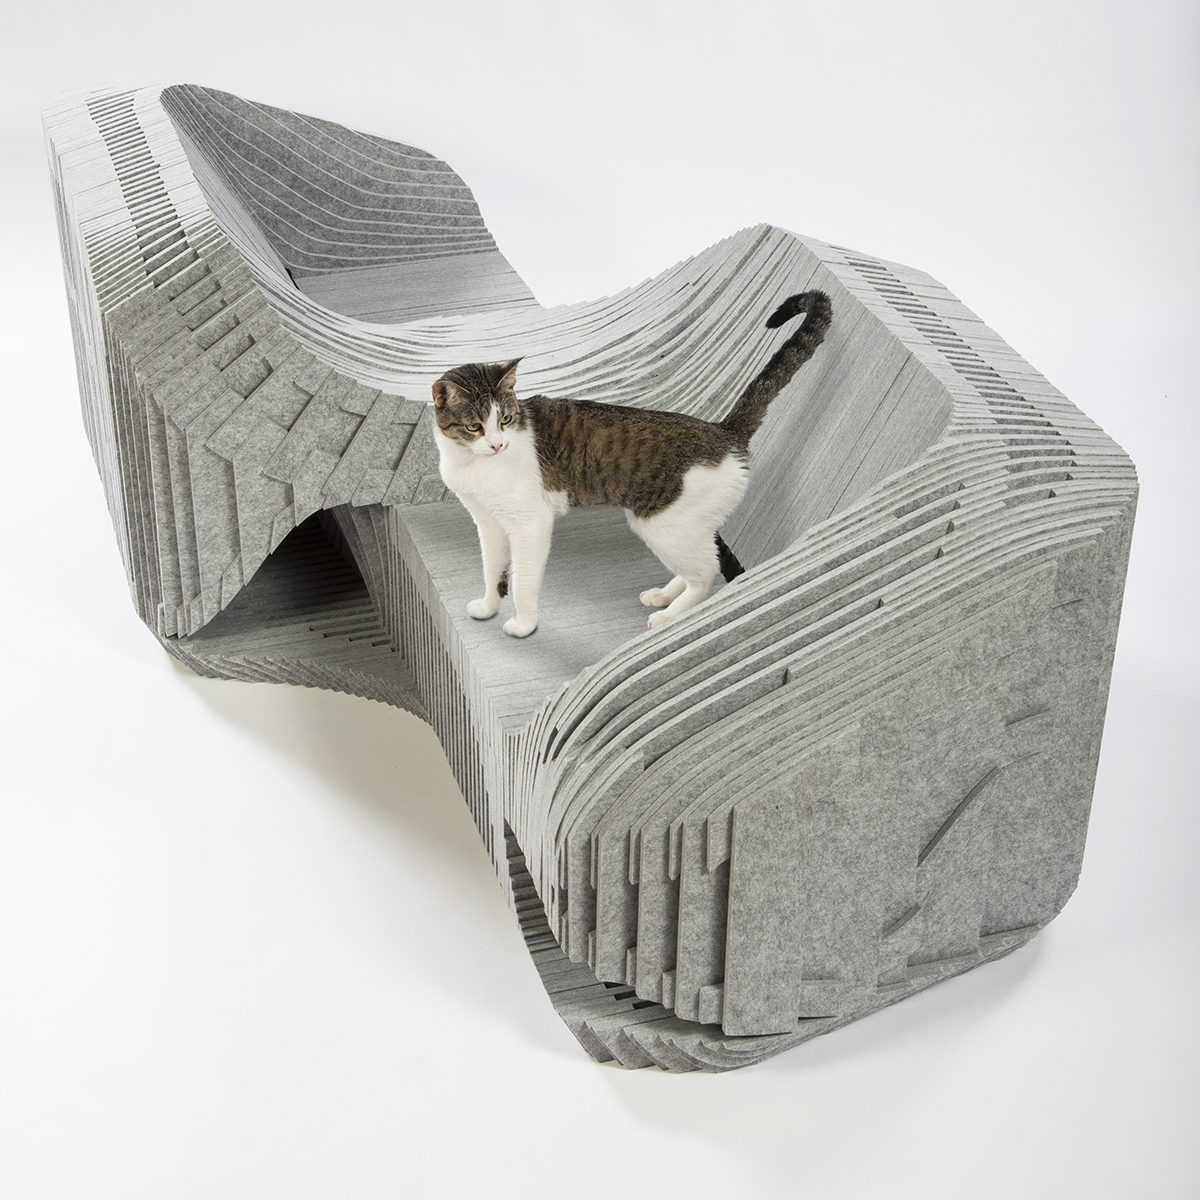 02-formation-association-arktura-burohappold-cat-shelter